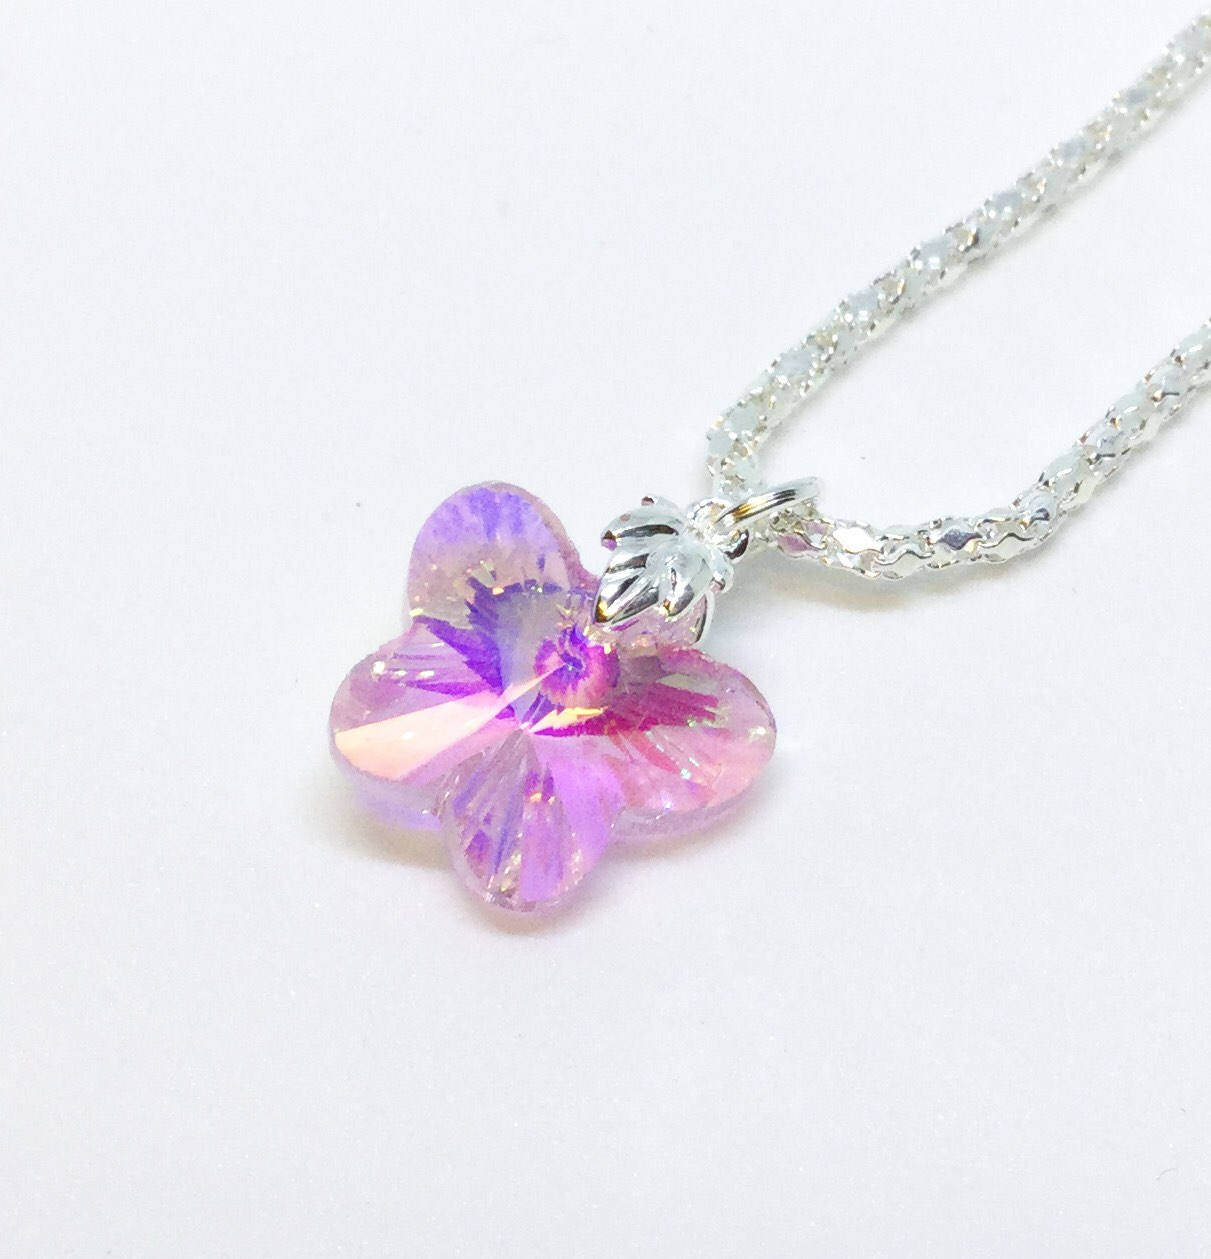 Delicate Ab Crystal Cut Glass Pendant Necklace. Butterfly Crystal Fairy Necklace. Magical Crystal Necklace. Gift For Her (View 12 of 25)